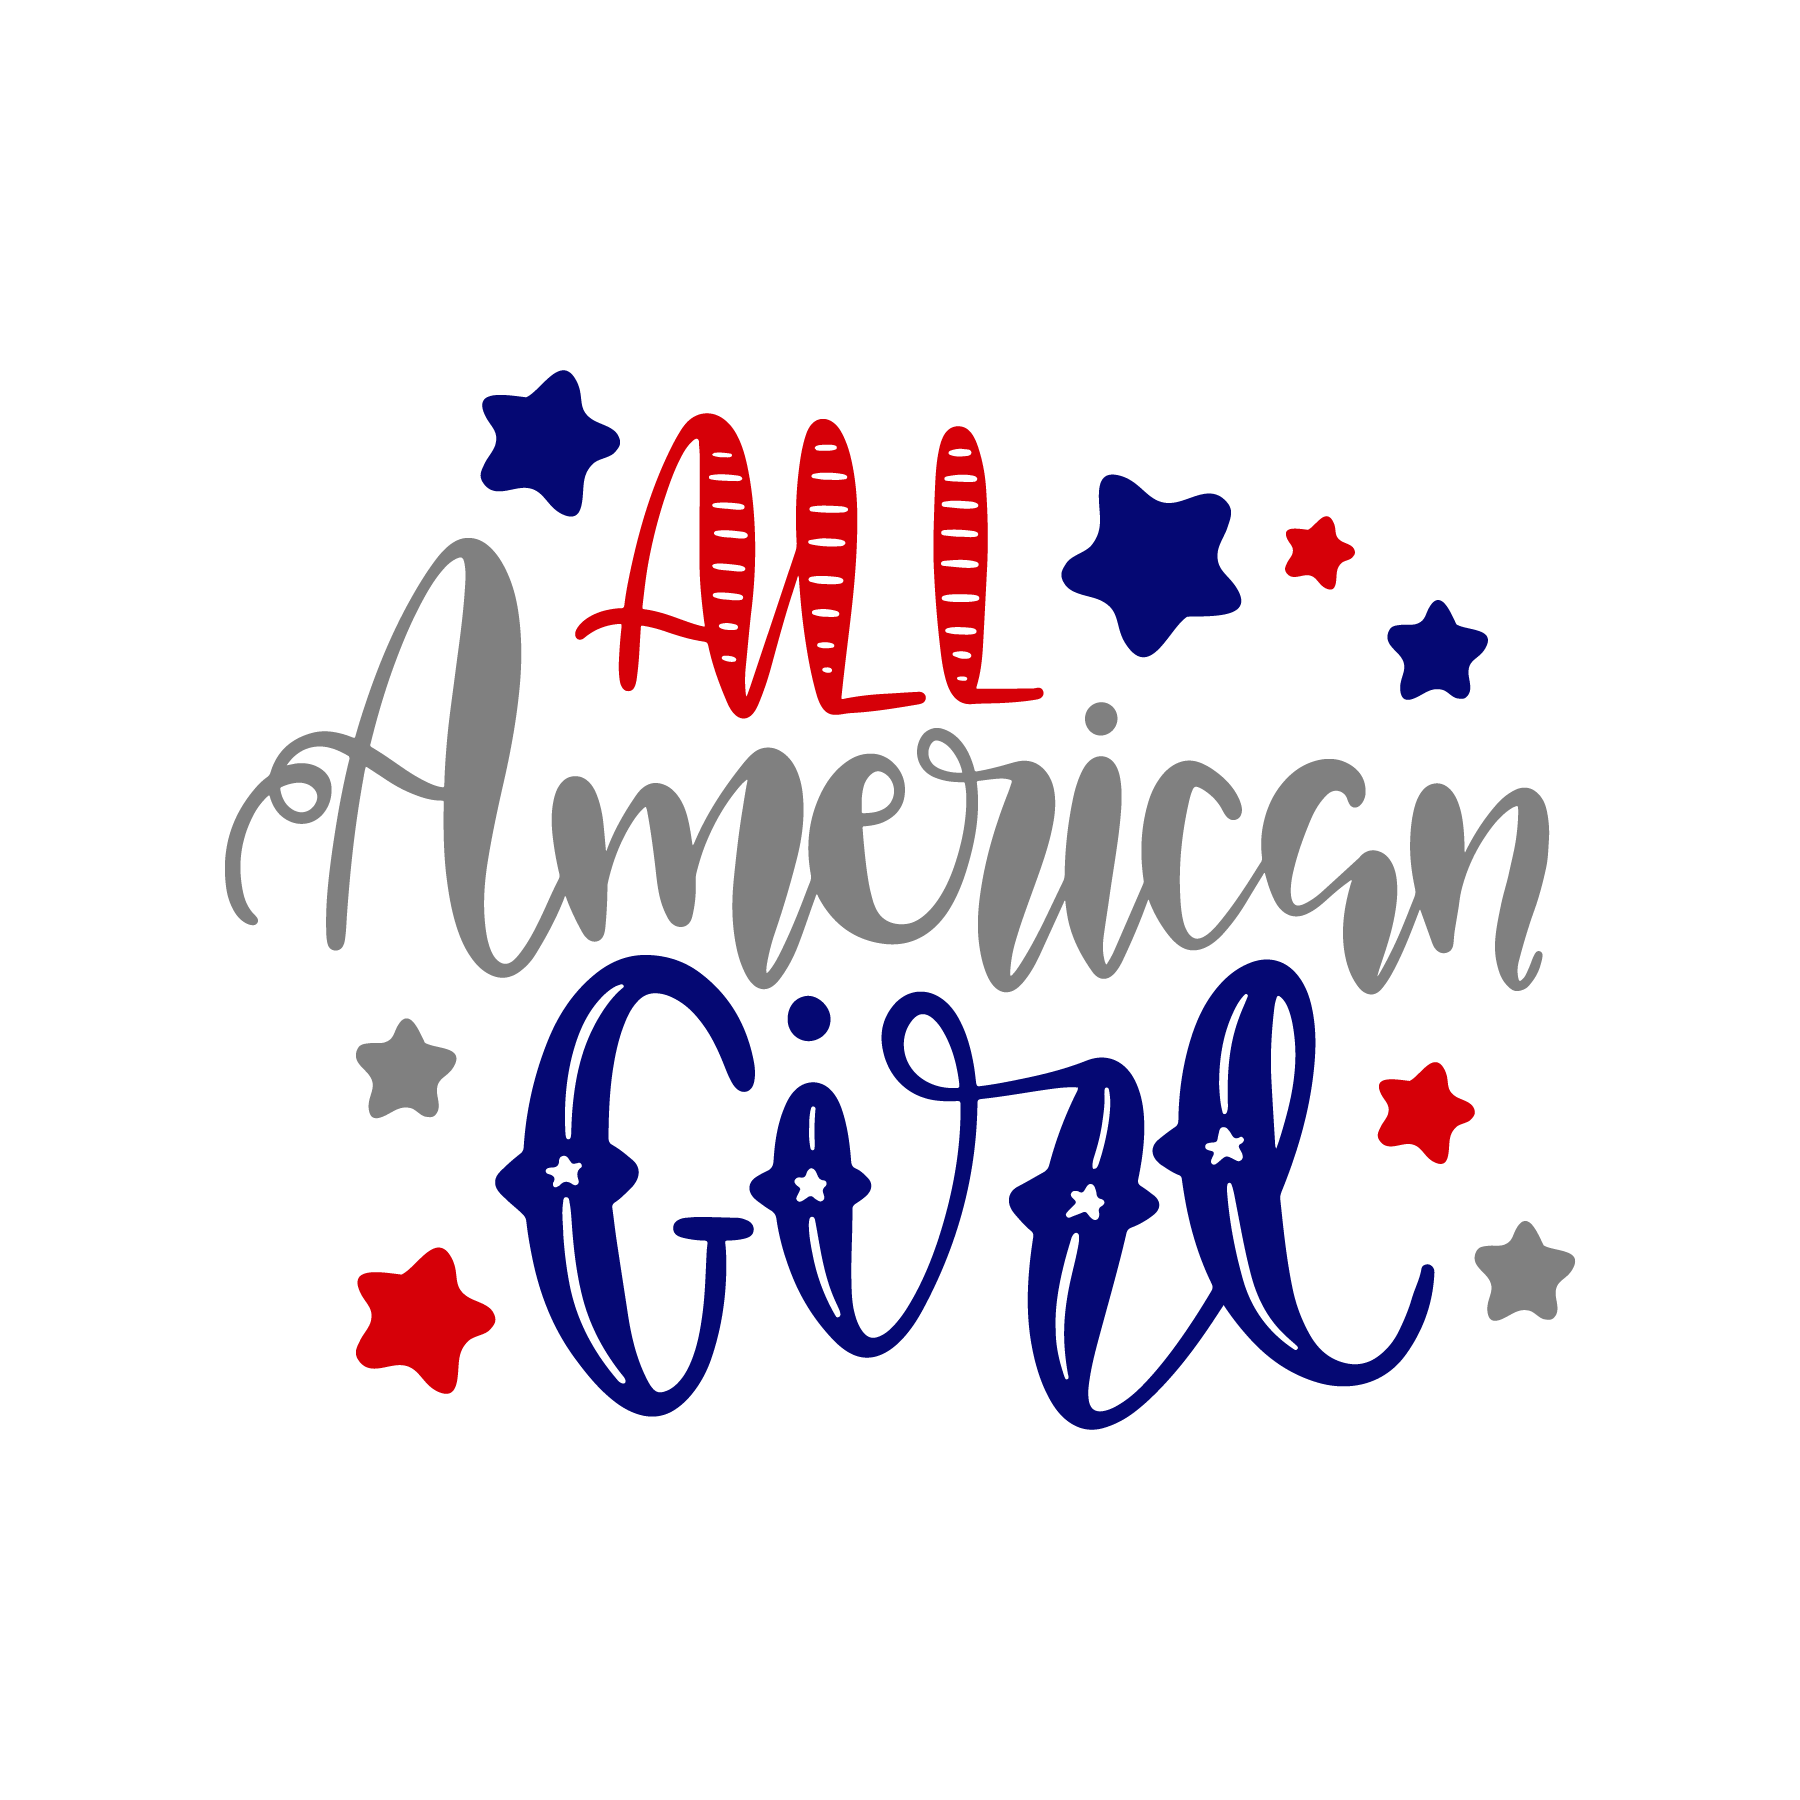 All American Girl Commercial Use Ok All American Girl Fourth Of July Shirts Girls Shirts Vinyl